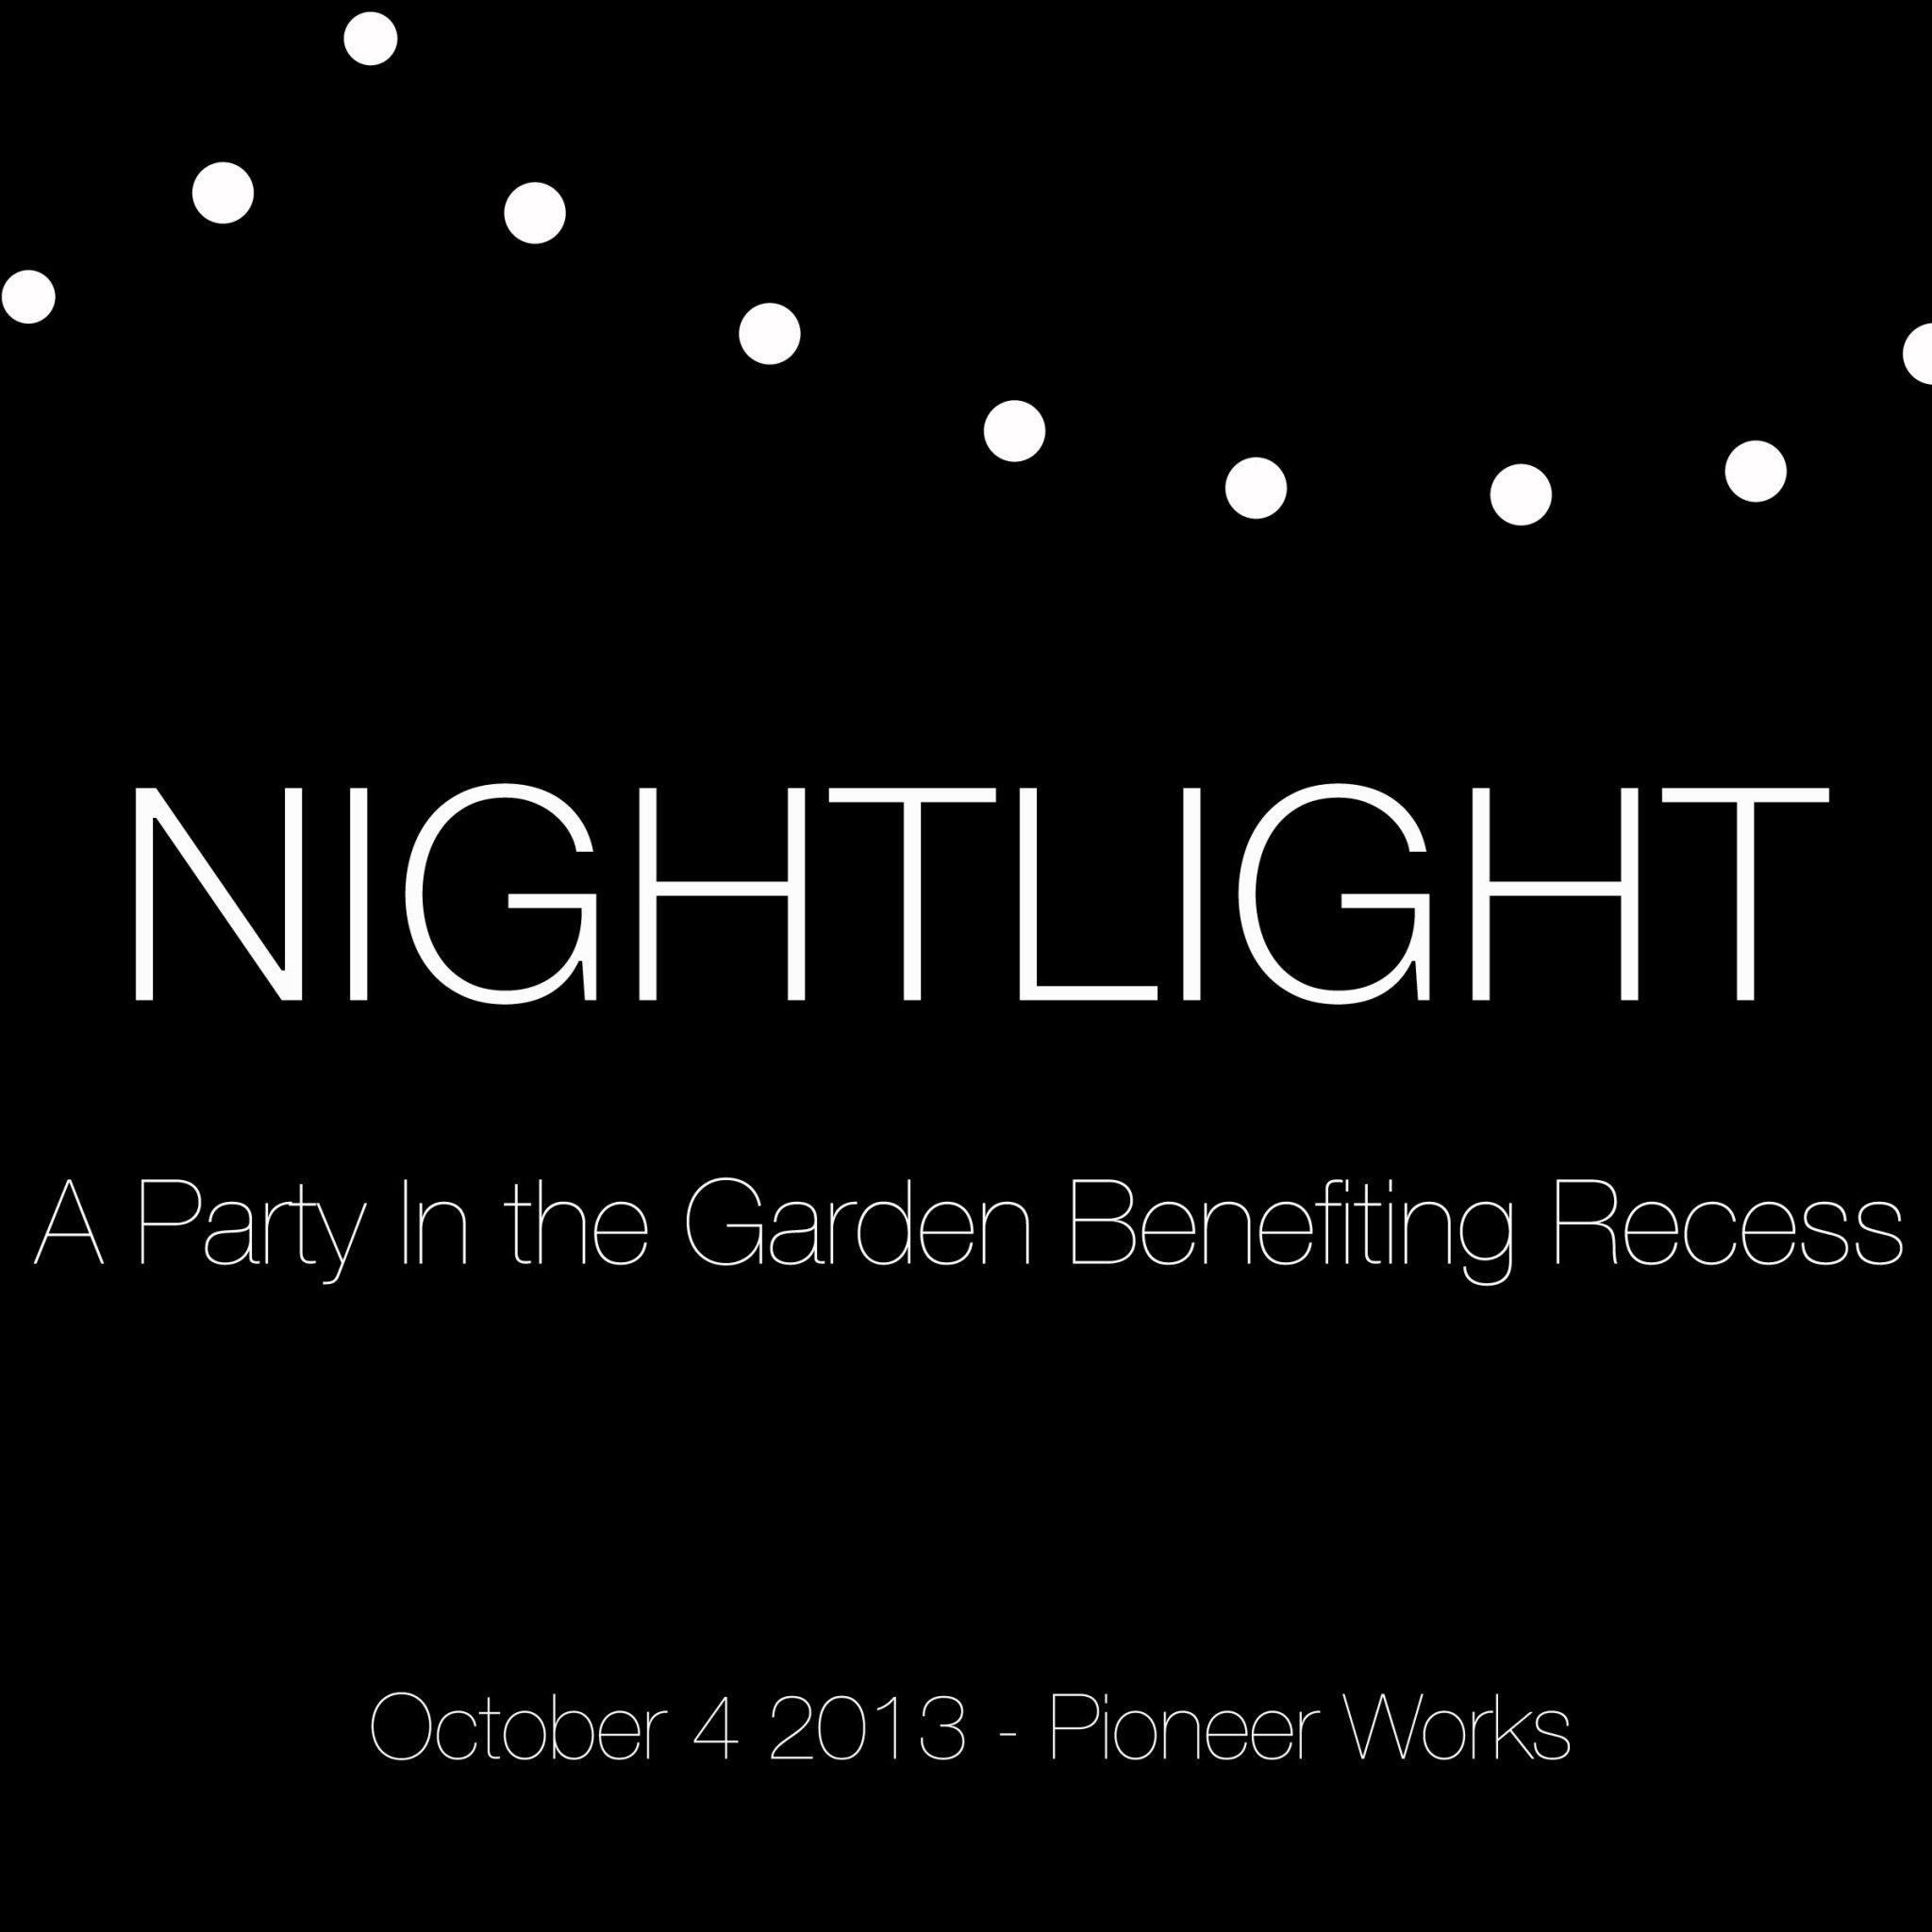 Invite Nightlight